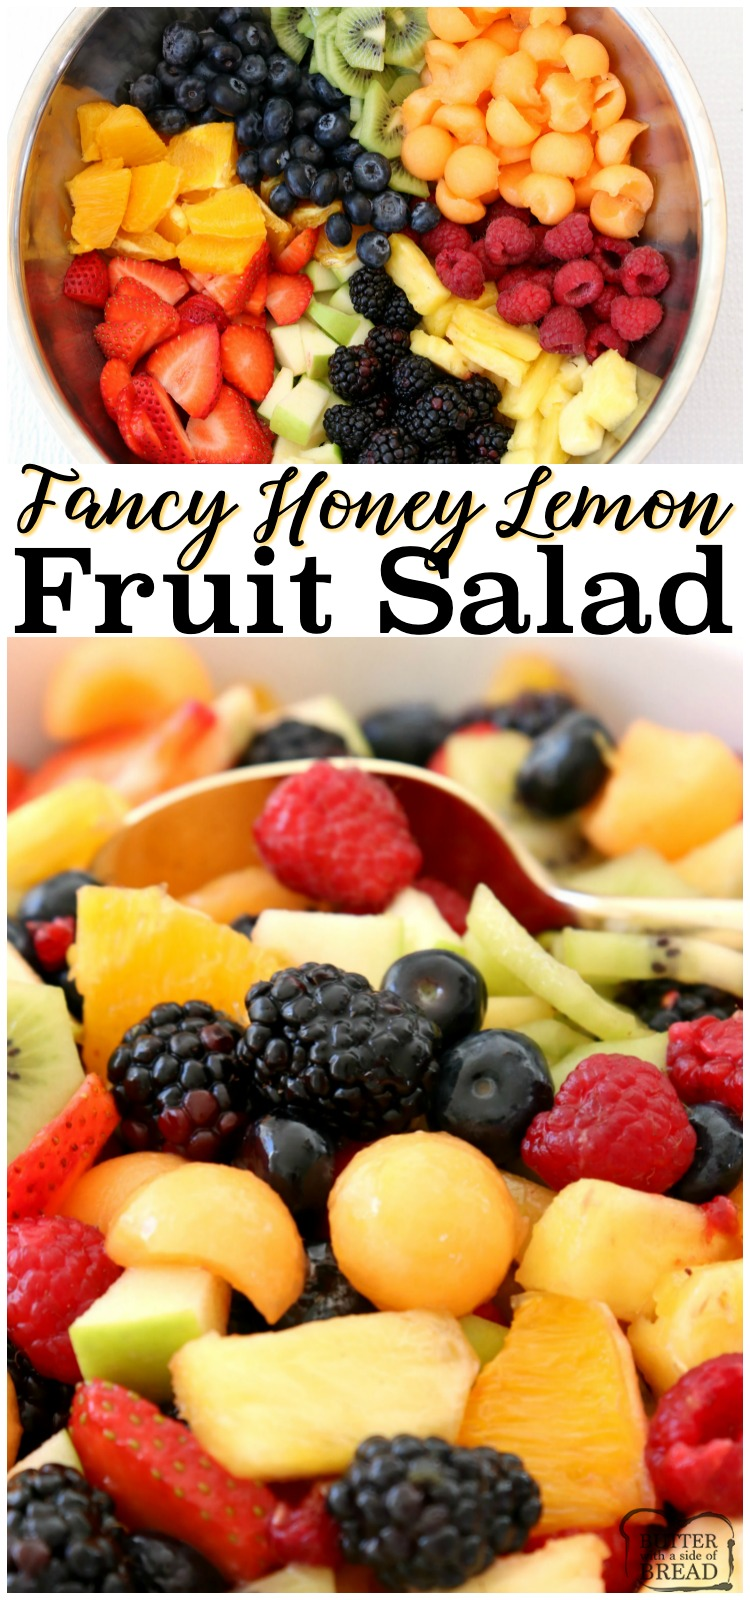 Fancy Fruit Salad is a lovely fruit salad recipe perfect for parties and get-togethers. The sweet, honey lemon glaze enhances flavors & keeps the fruit colors bright and vibrant. #fruit #salad #lemon #honey #fancy #fruity #party #recipe from BUTTER WITH A SIDE OF BREAD